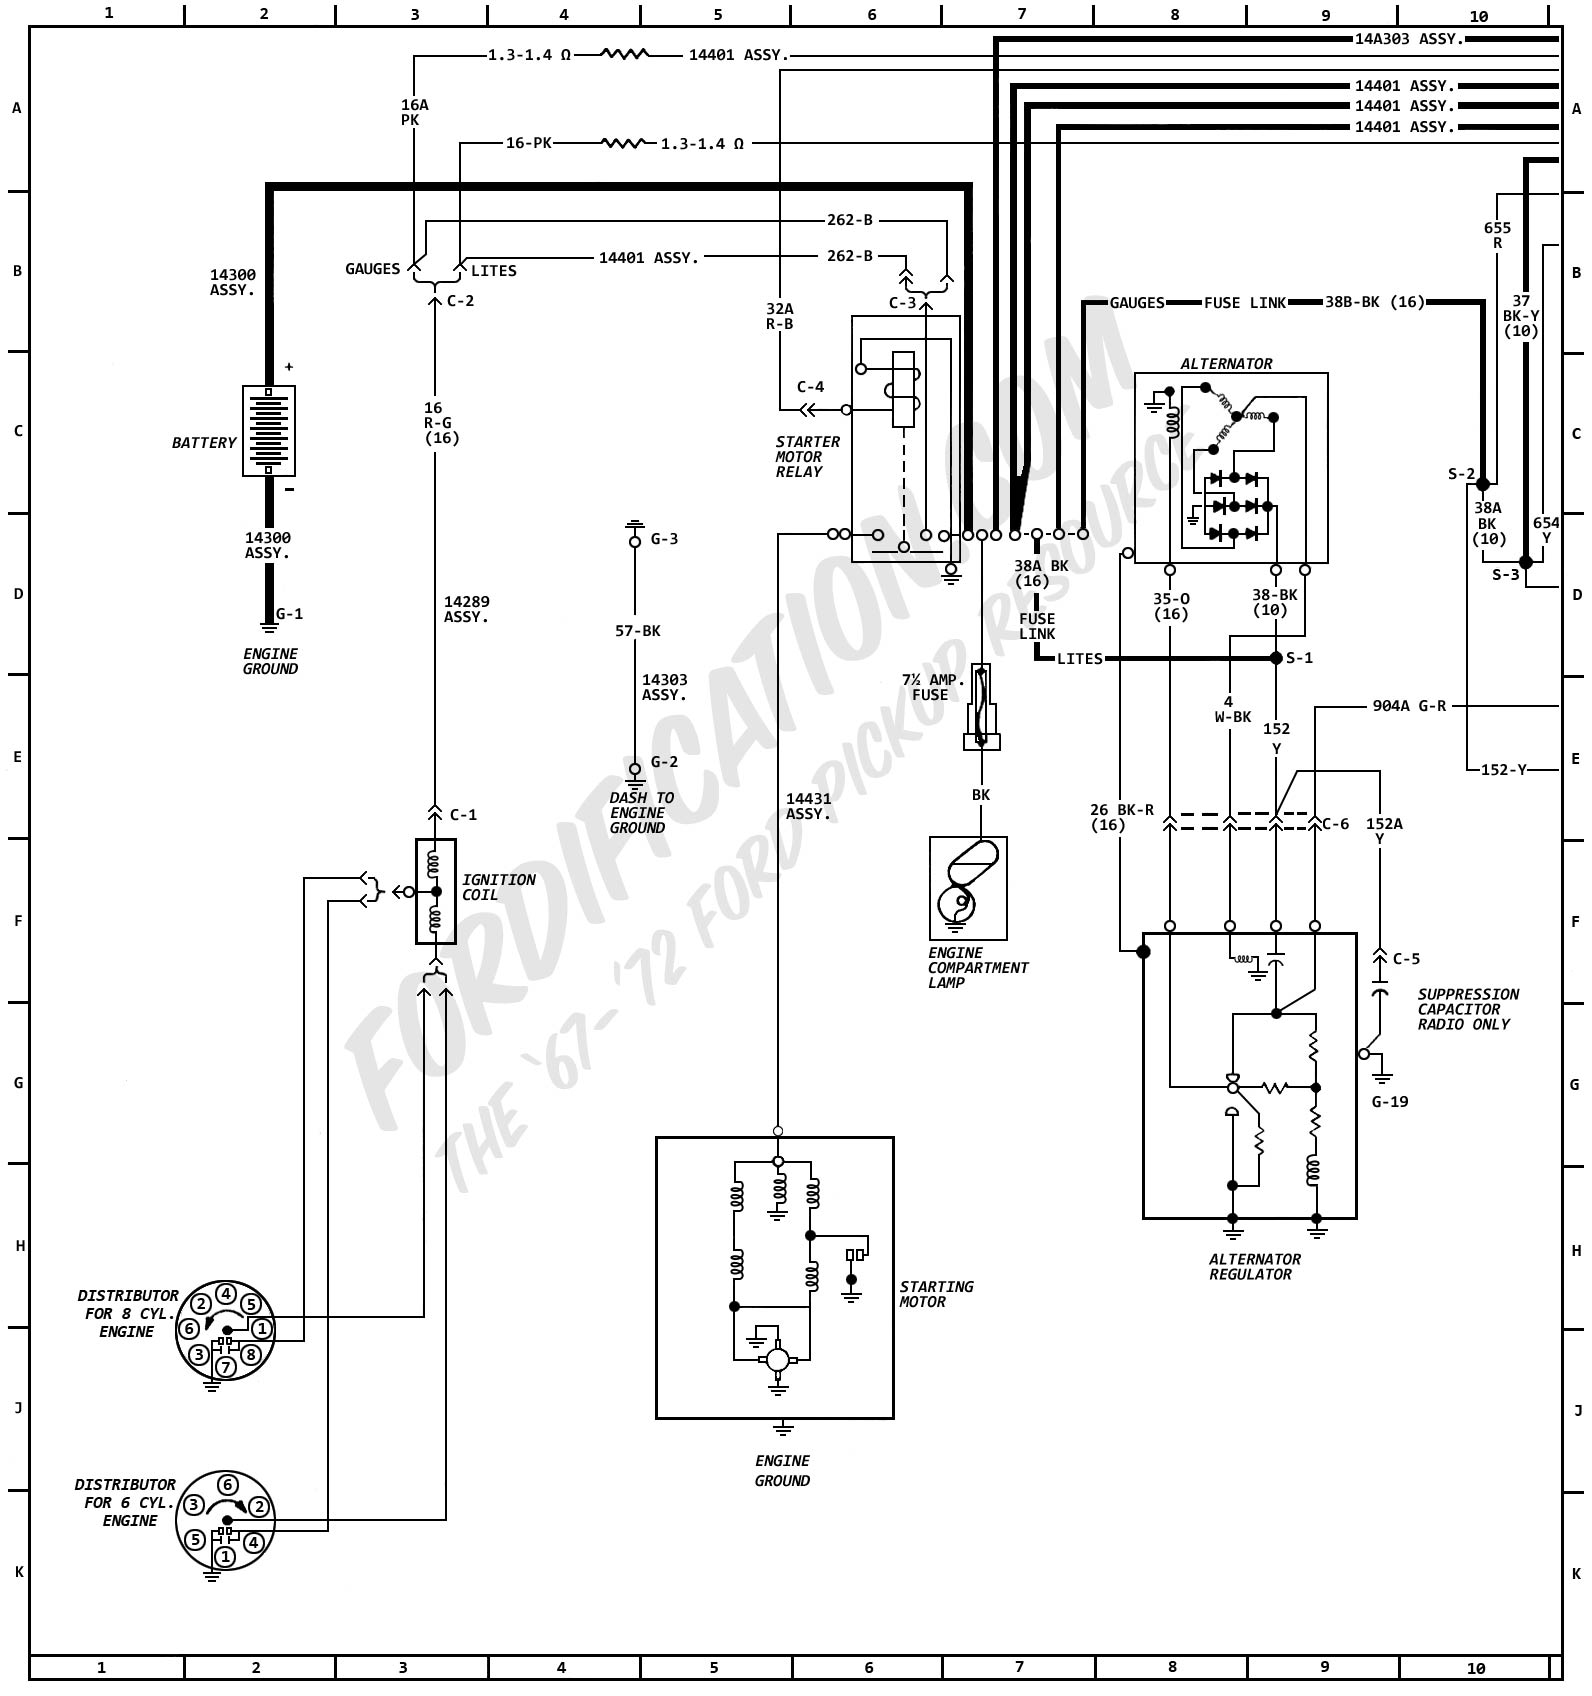 1972 ford f 250 wiper switch wiring diagram    1972    f250 charging problems    ford    truck enthusiasts forums     1972    f250 charging problems    ford    truck enthusiasts forums